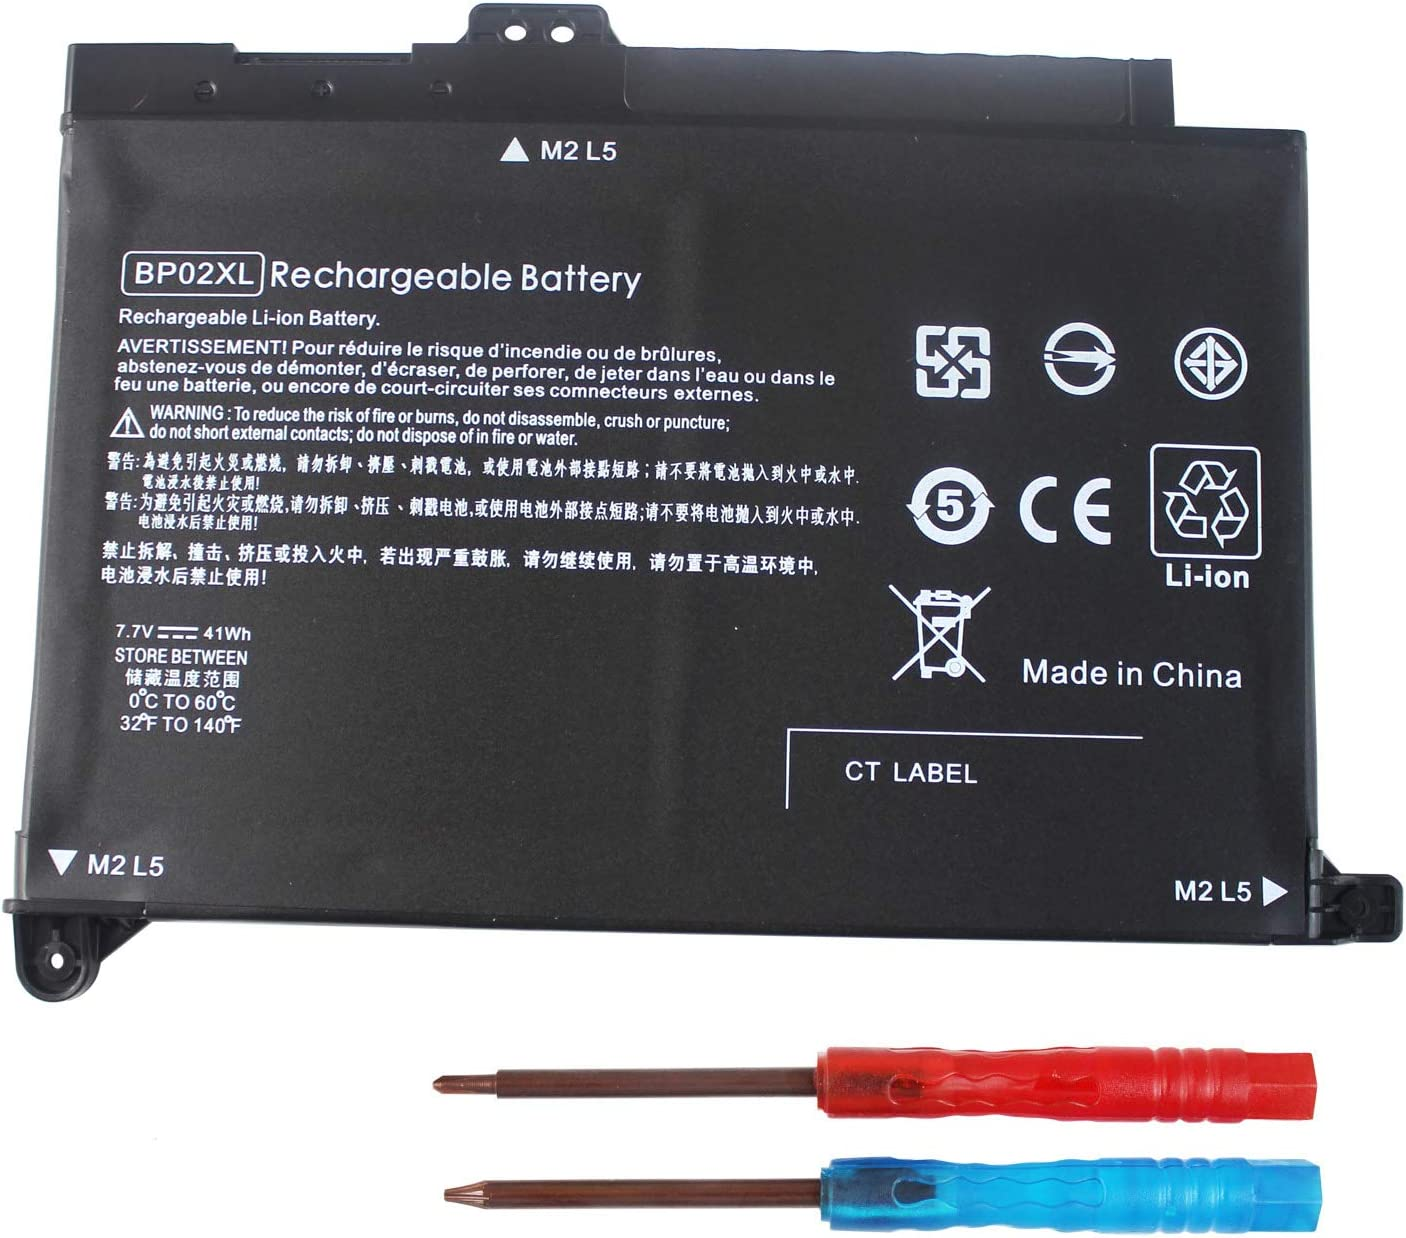 Gomarty BP02XL Laptop Battery Compatible for HP Pavilion PC 15 15-AU000 15-AU010WM 15-AU018WM Series HSTNN-UB7B HSTNN-LB7H 2ICP7/65/80 849569-542 TPN-Q172 7.7V 42WH